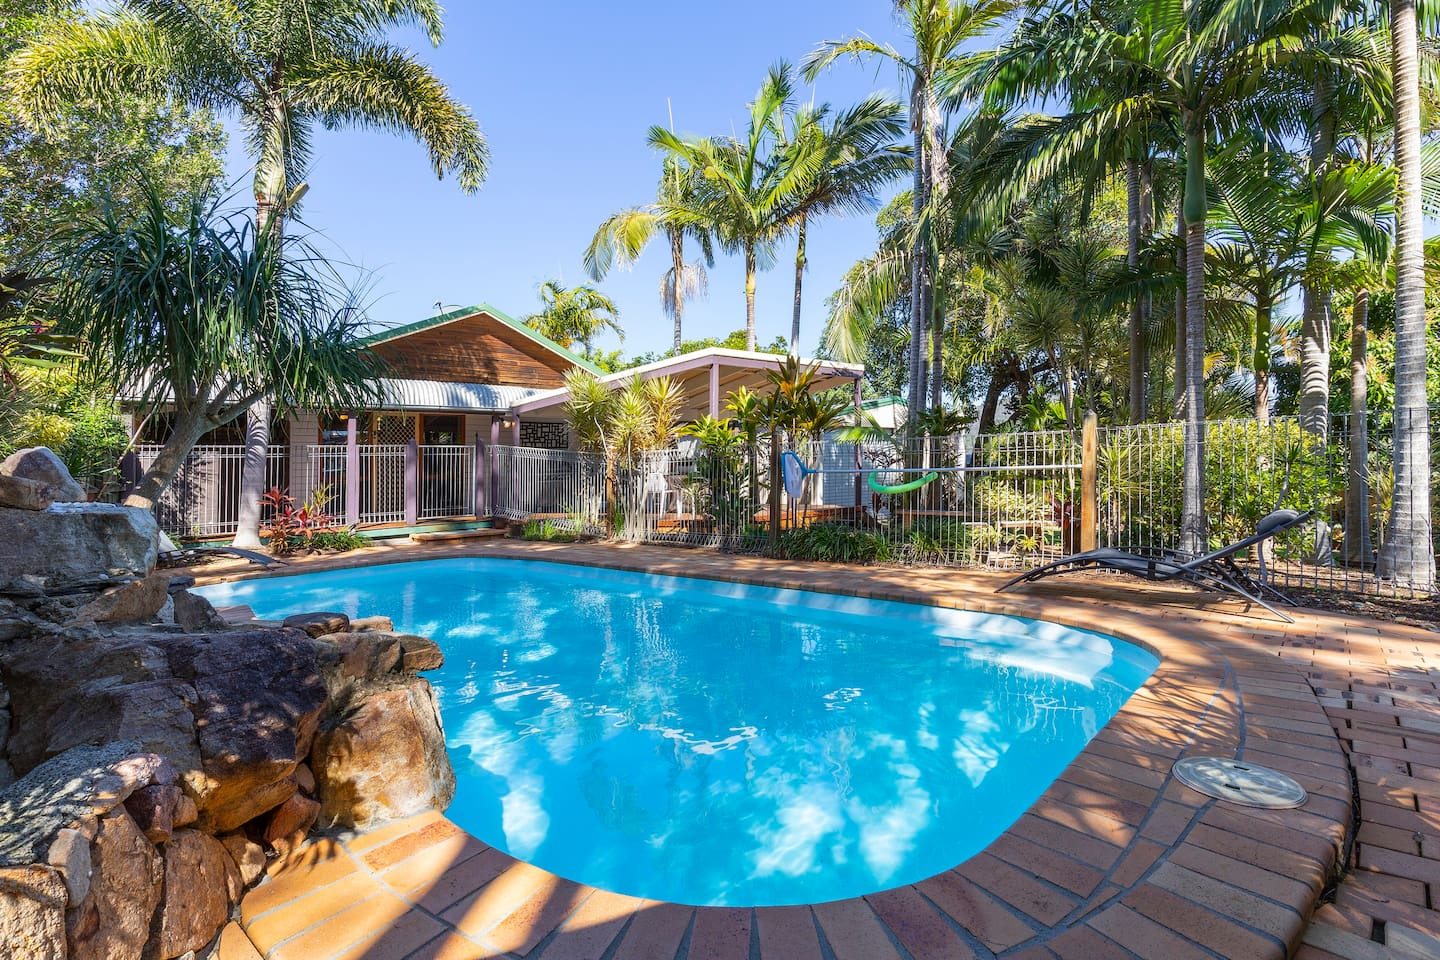 This large, spacious four bedroom Beach house is located in an elevated position and perfectly located just 800 metres to local beaches. The property provides a private rear deck area, overlooking the in-ground saltwater pool & fully fenced rear yard area. You can just relax in the peaceful, quiet surrounds and enjoy the soothing ocean breezes and sounds of local birdlife. The property is Pet Friendly.